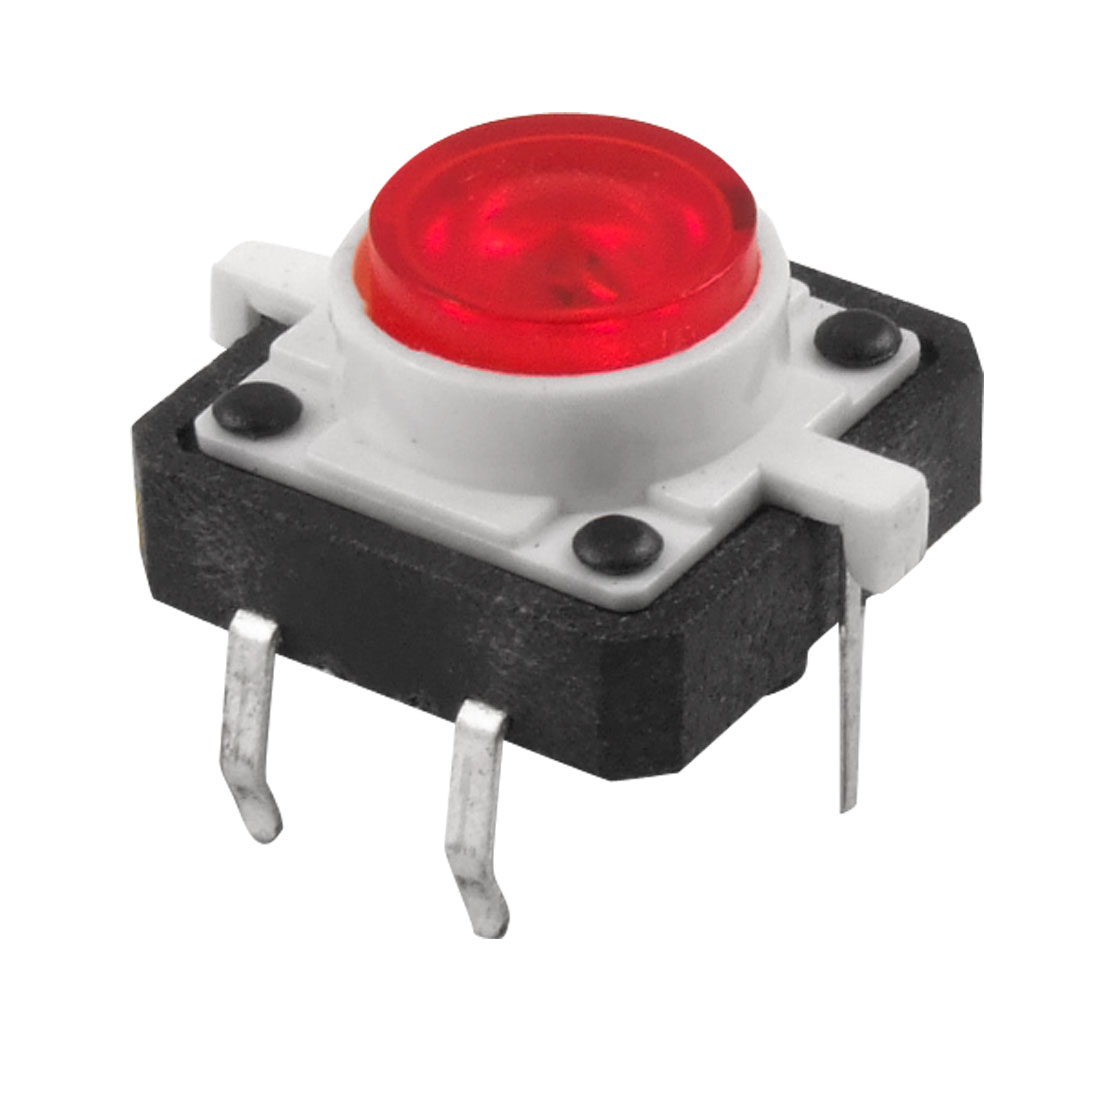 Red LED Light Momentary Tactile Tact Push Button Switch 12 x 12mm x 7mm 4Pin DIP